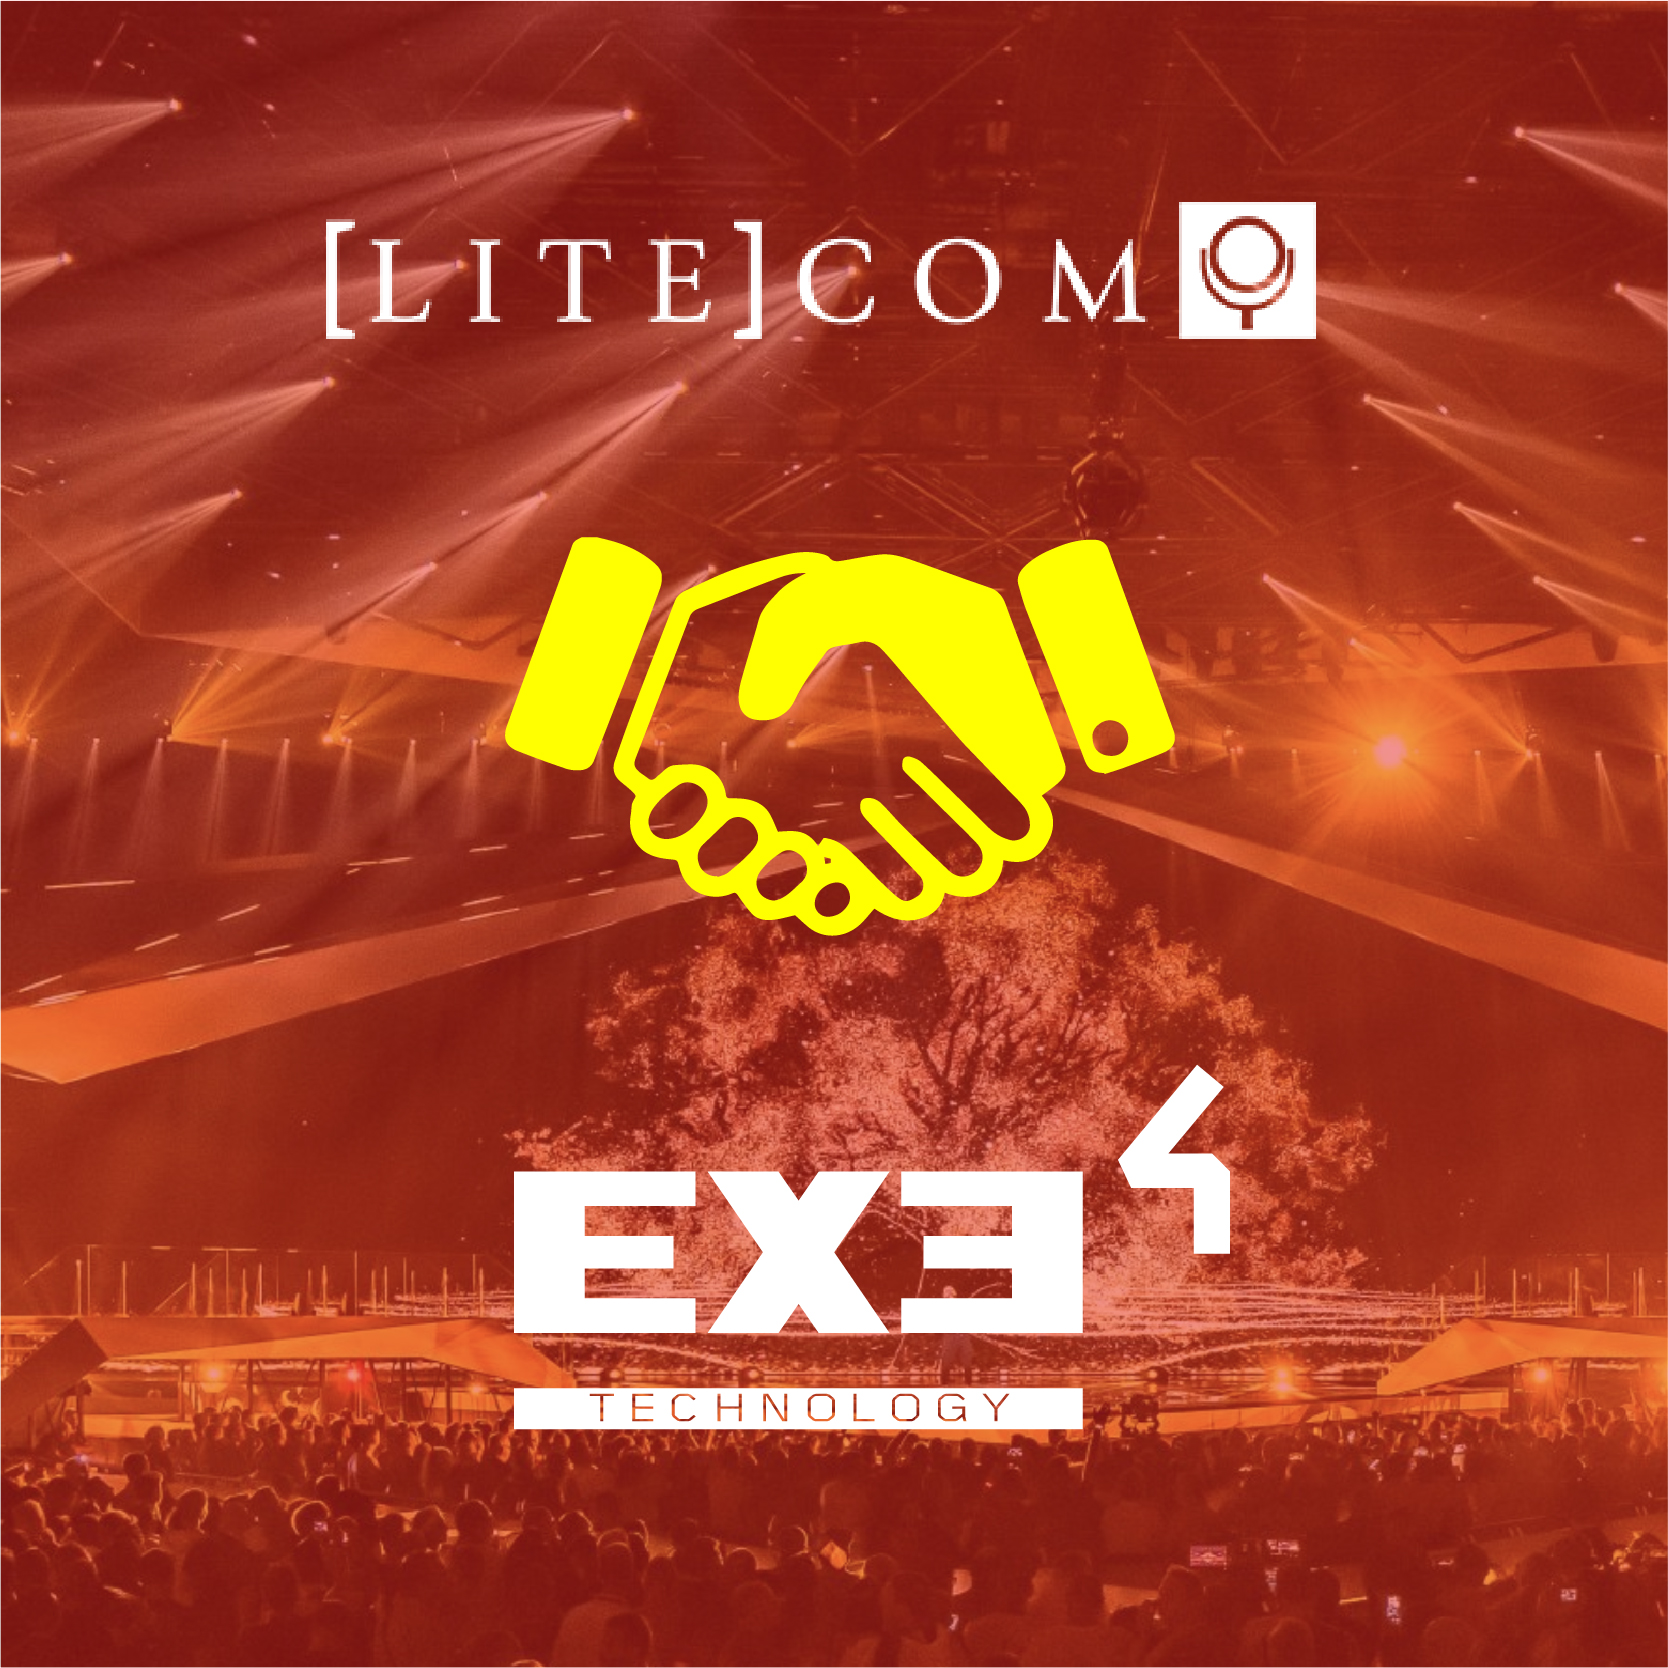 LITECOM RELIES ON DST FROM EXE TECHNOLOGY FOR SCENIC MOVEMENT